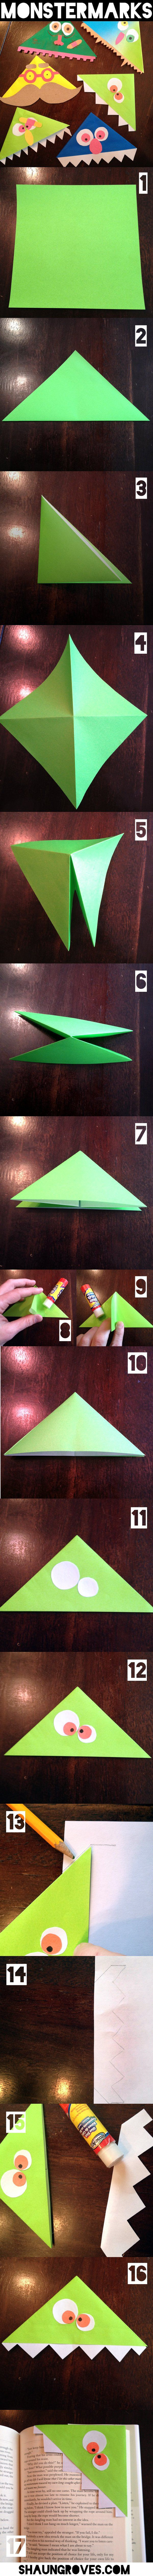 Monstermarks bookmark kid craft tutorial